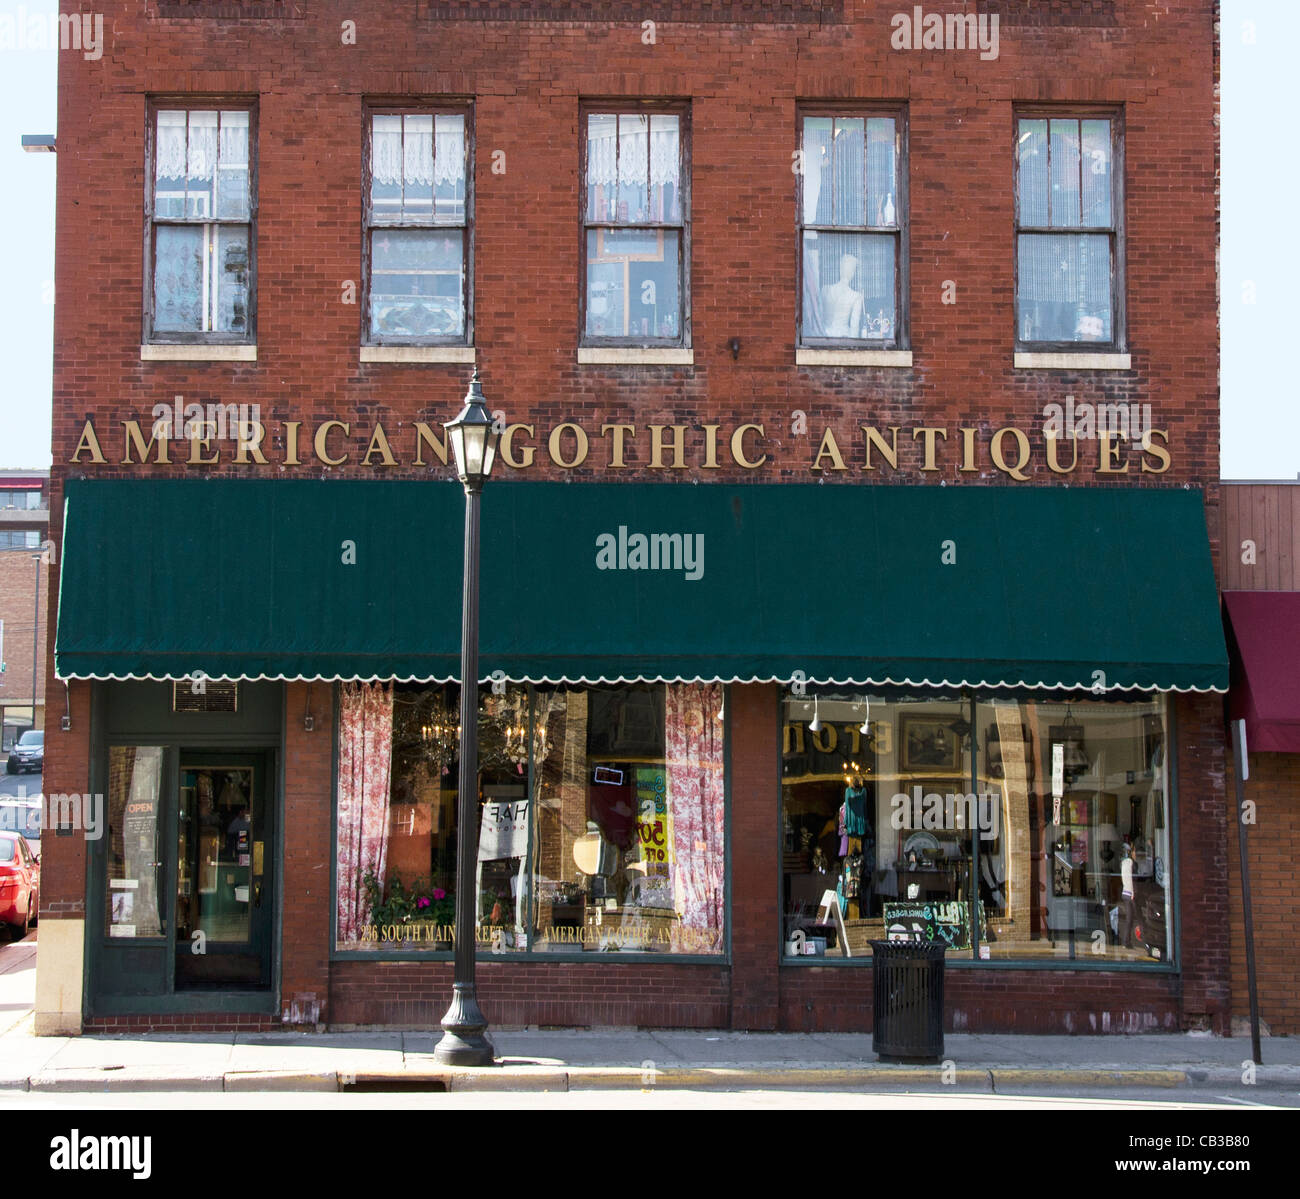 American Gothic Antiques in Stillwater, Minnesota, a town known for its bookstores, art galleries and antique stores. - Stock Image